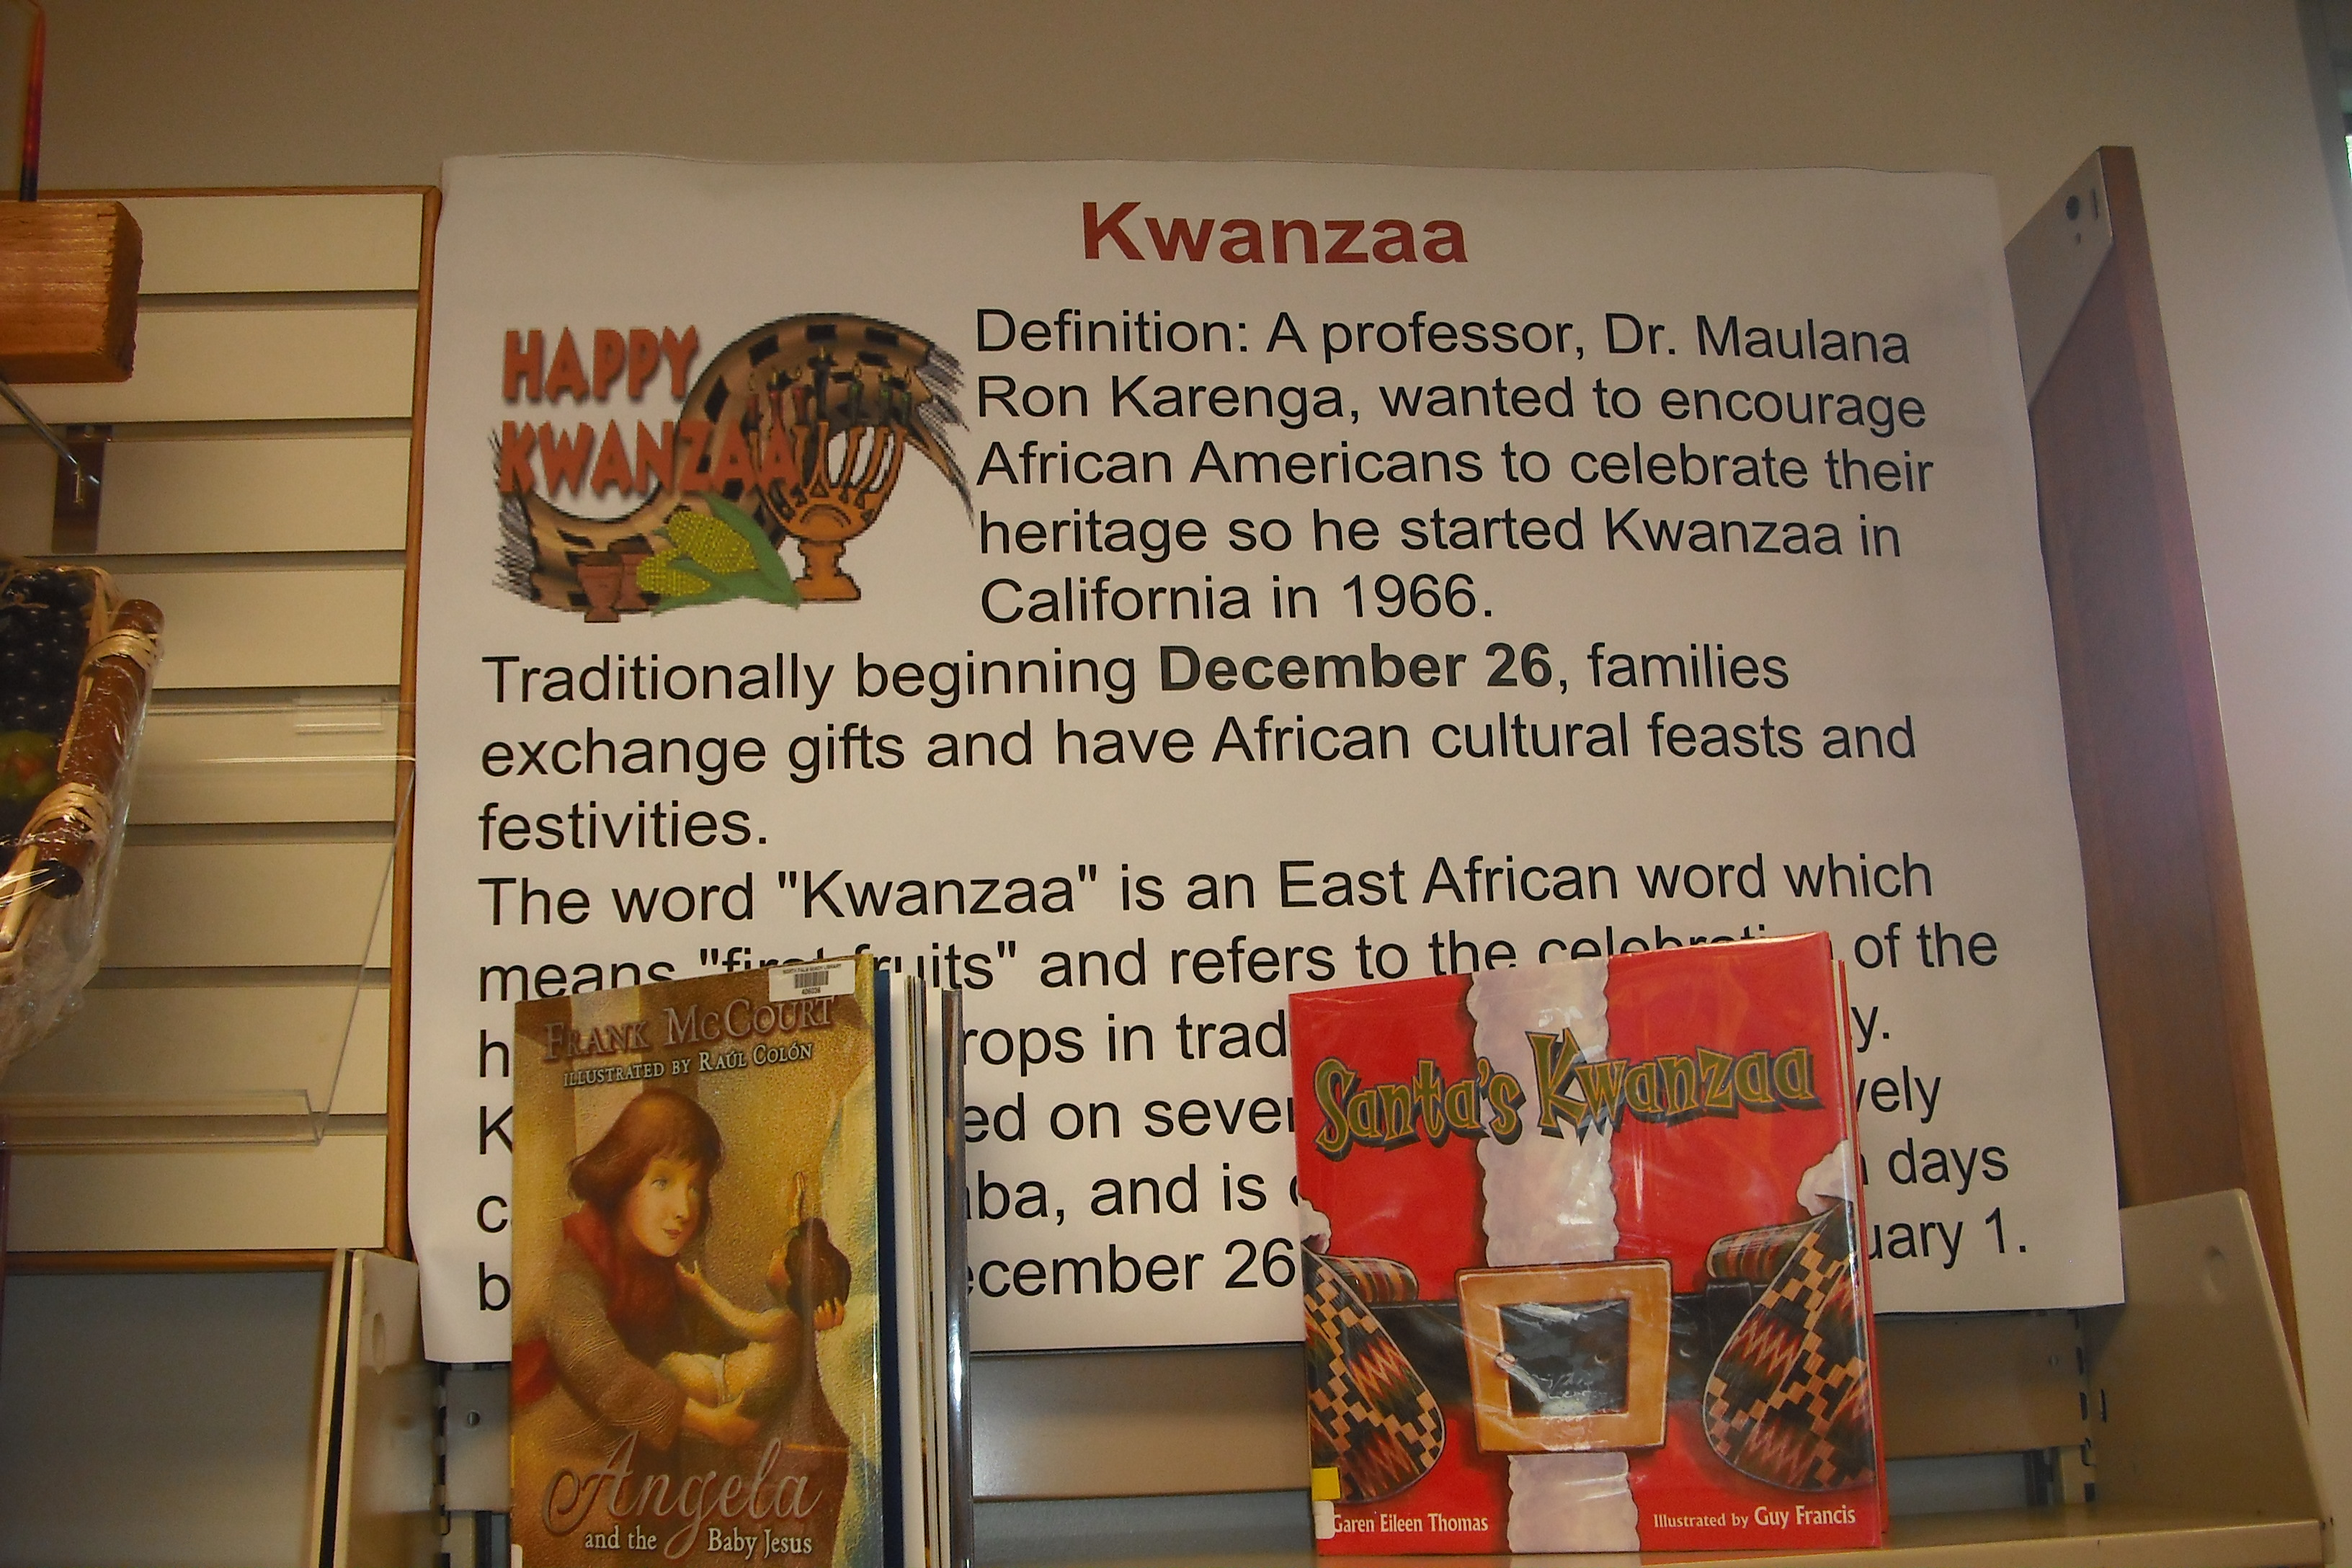 A poster with information about Kwanzaa